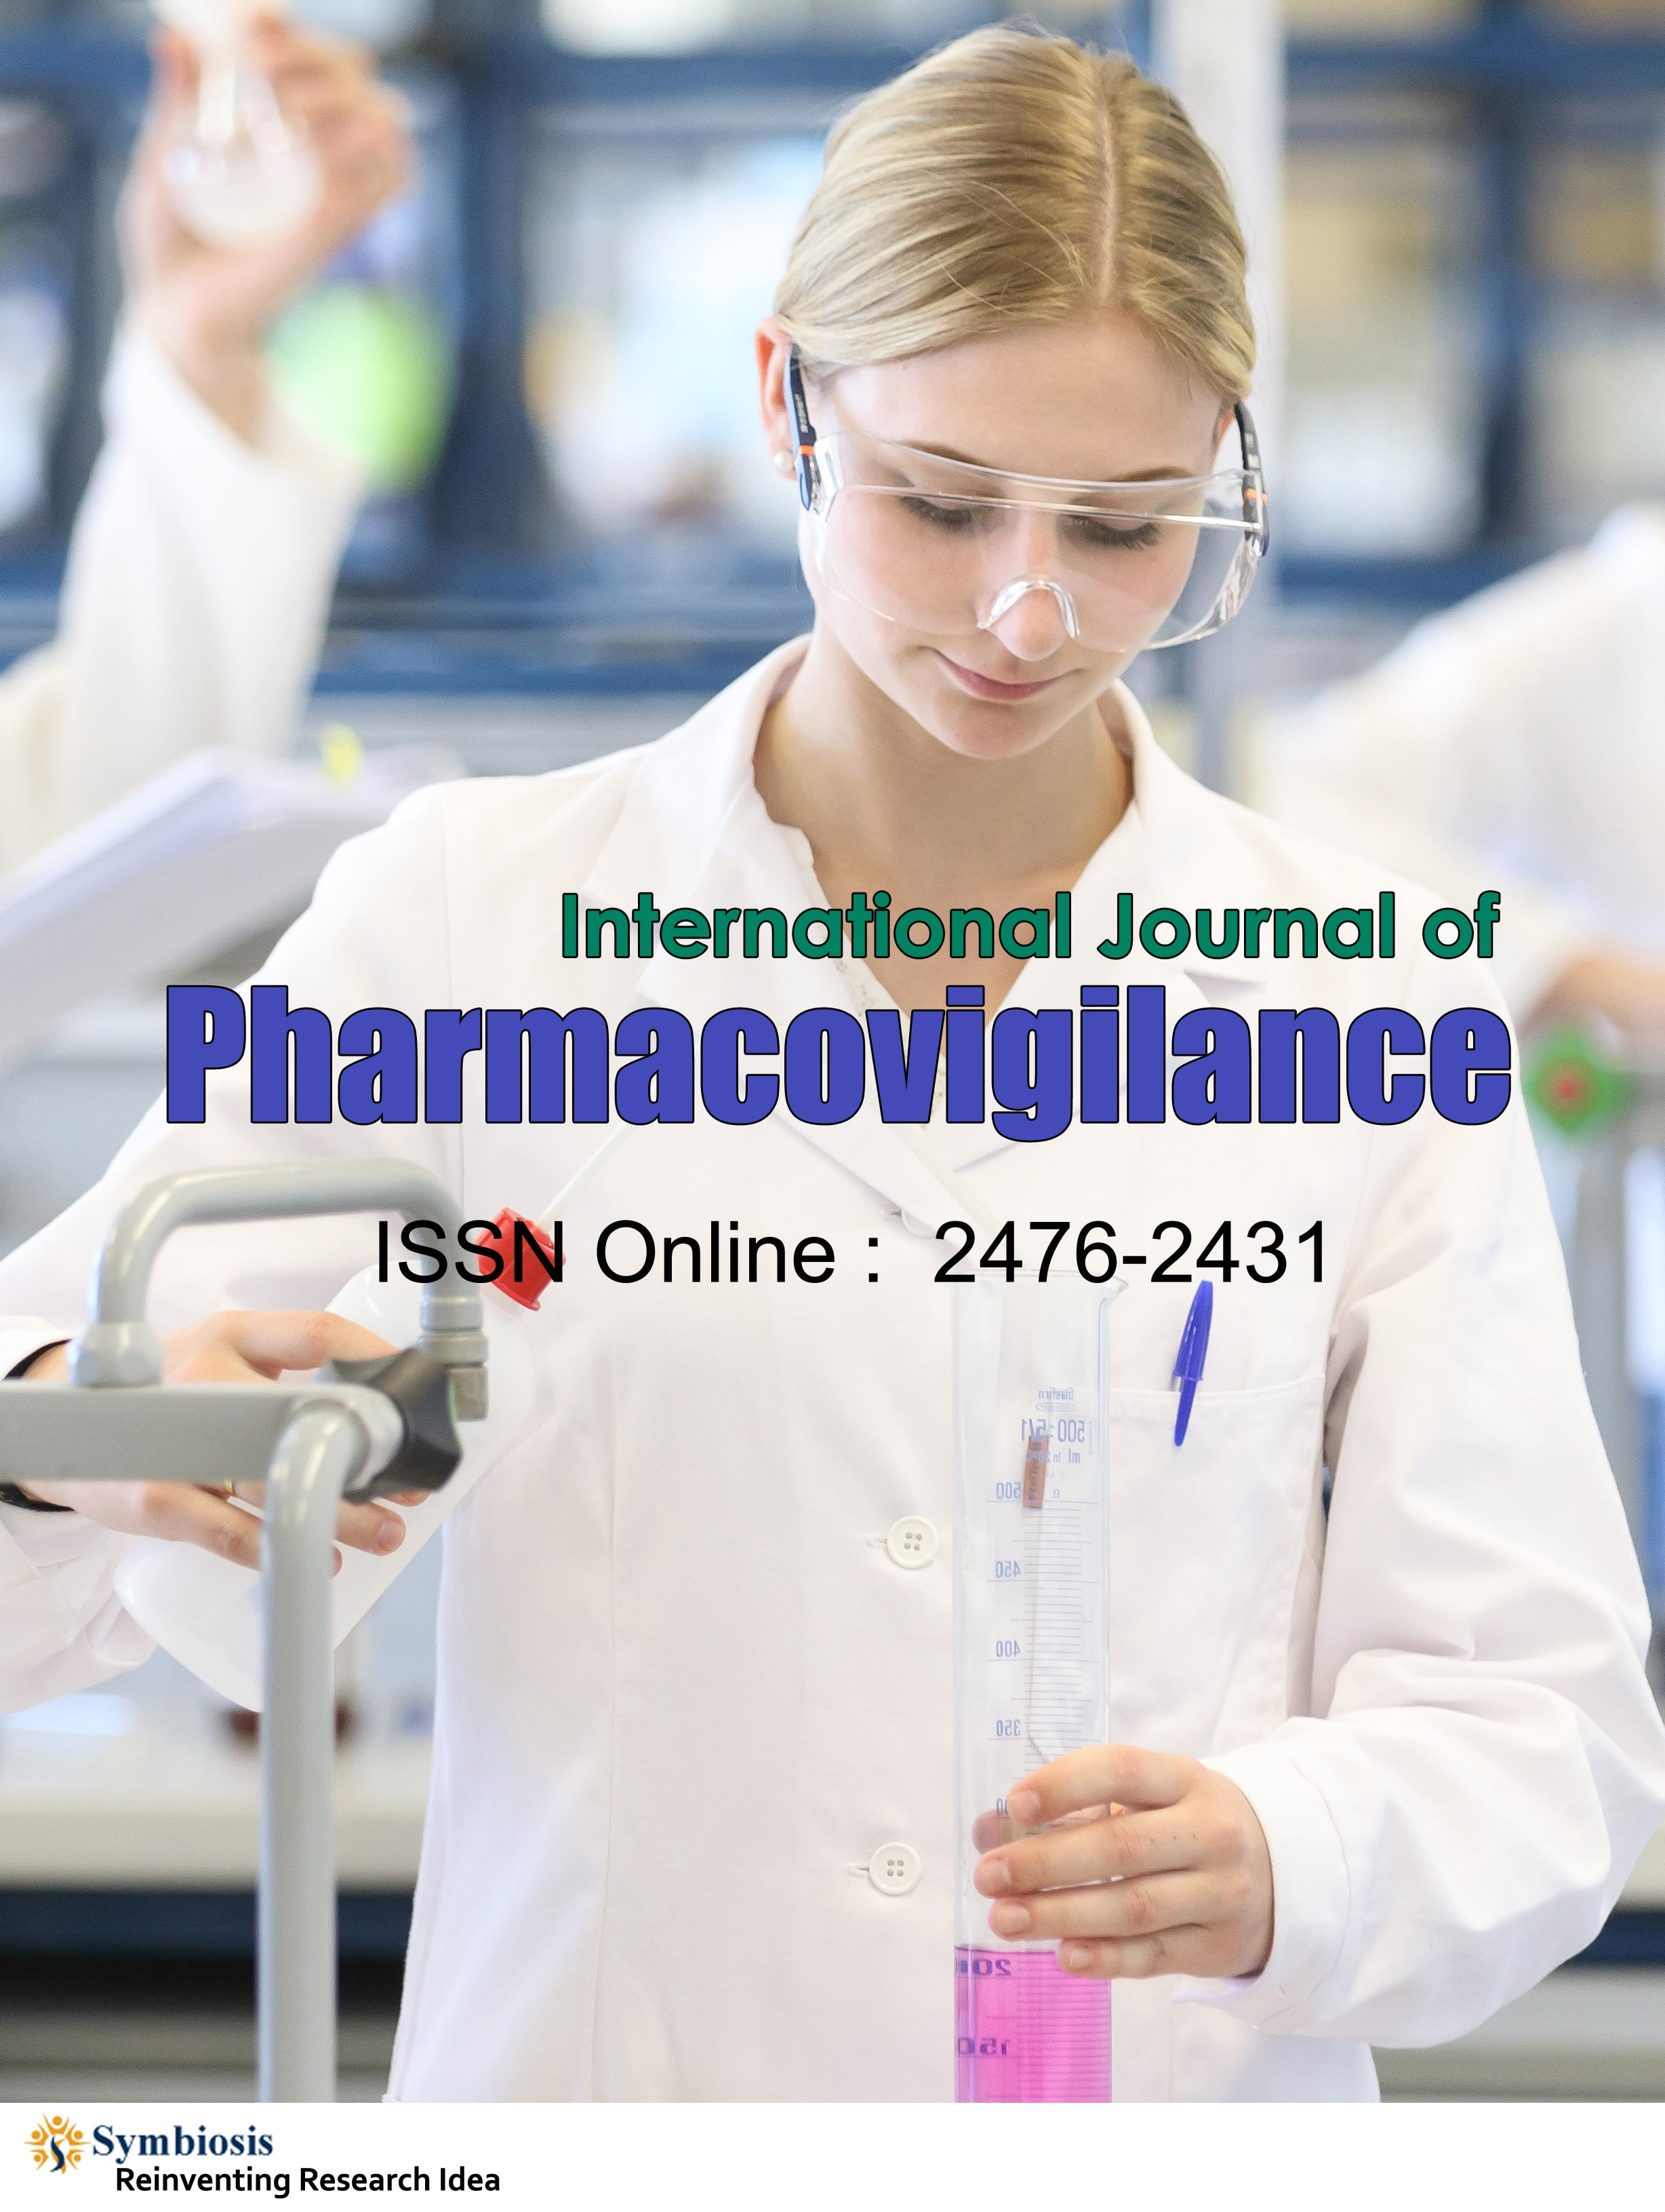 International Journal of Pharmacovigilance